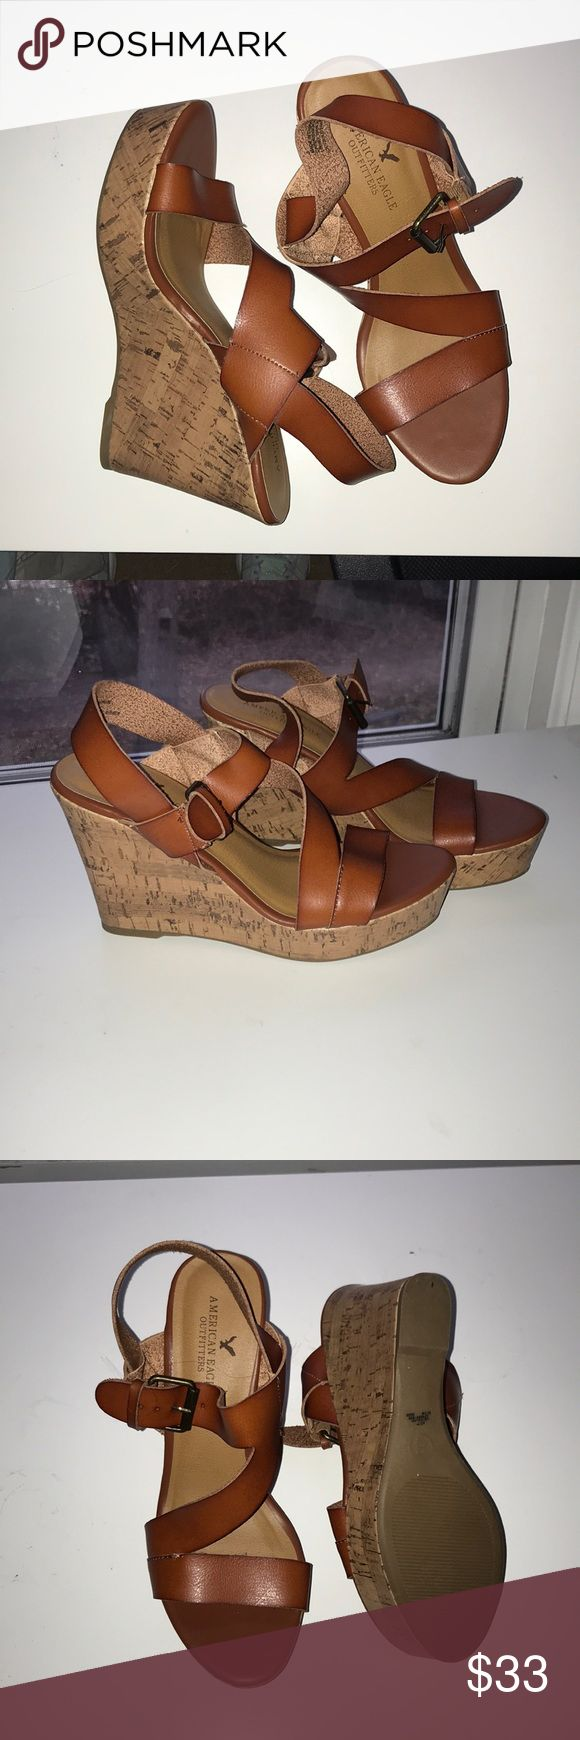 NTW american eagle buckle wedge sandals tan/red ish color bucket to adjust size size 9 never worn and still have online order packaging  super comfortable and easy to walk in perfect with jeans or dressed up  AEO strapping buckle wedges American Eagle Outfitters Shoes Wedges